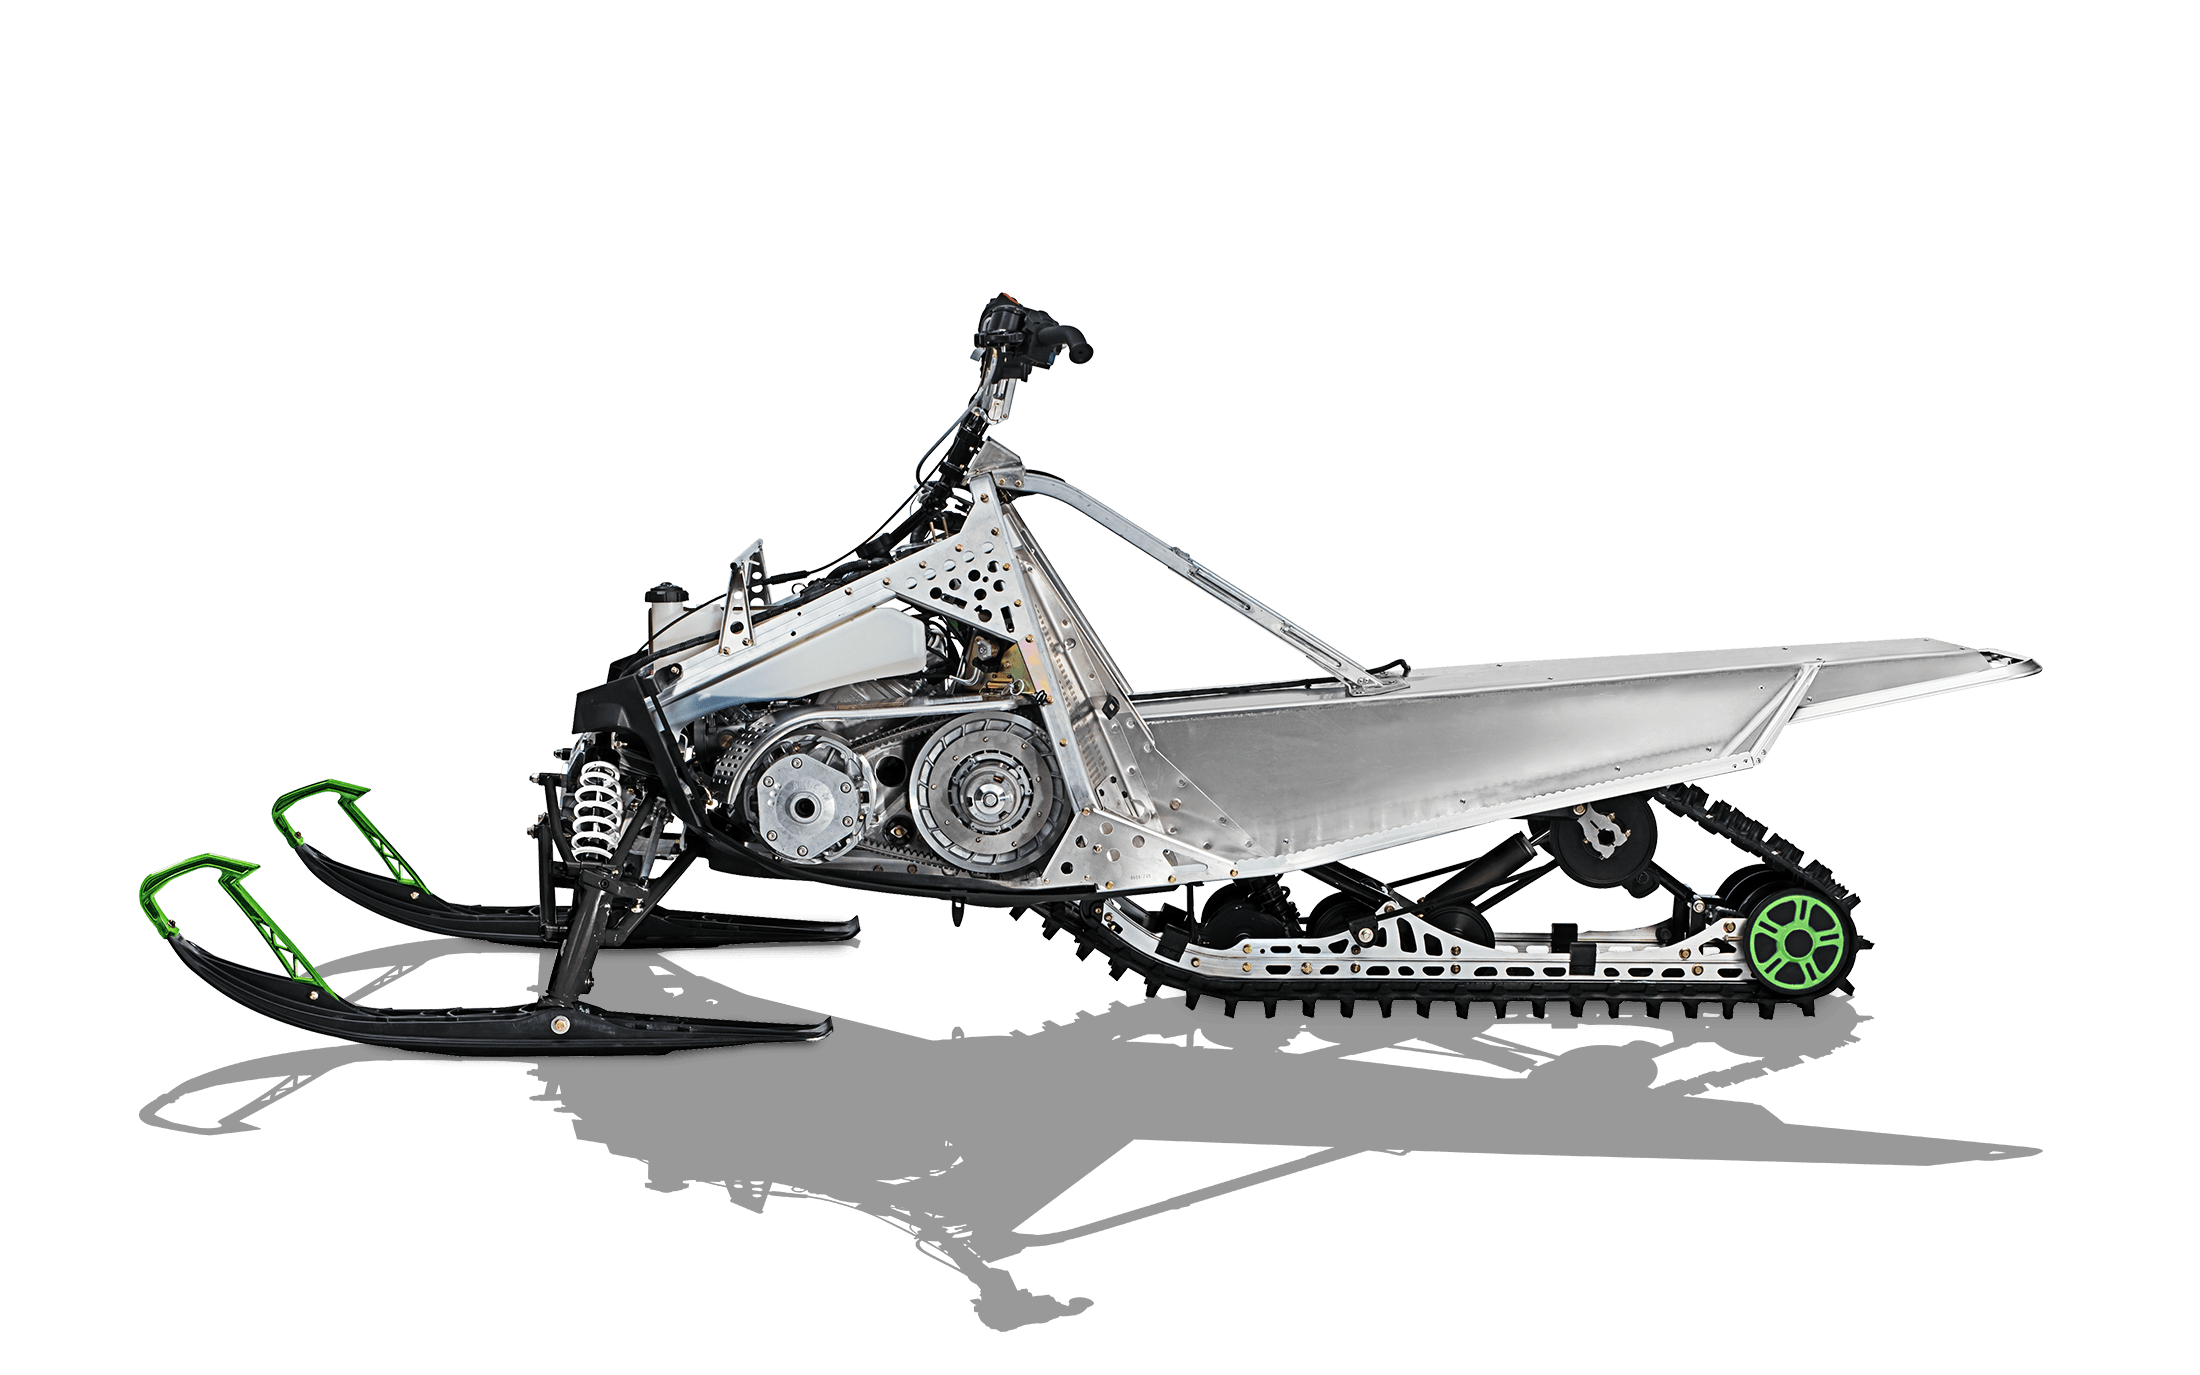 vector transparent download Snowmobile drawing. Family trail arctic cat.